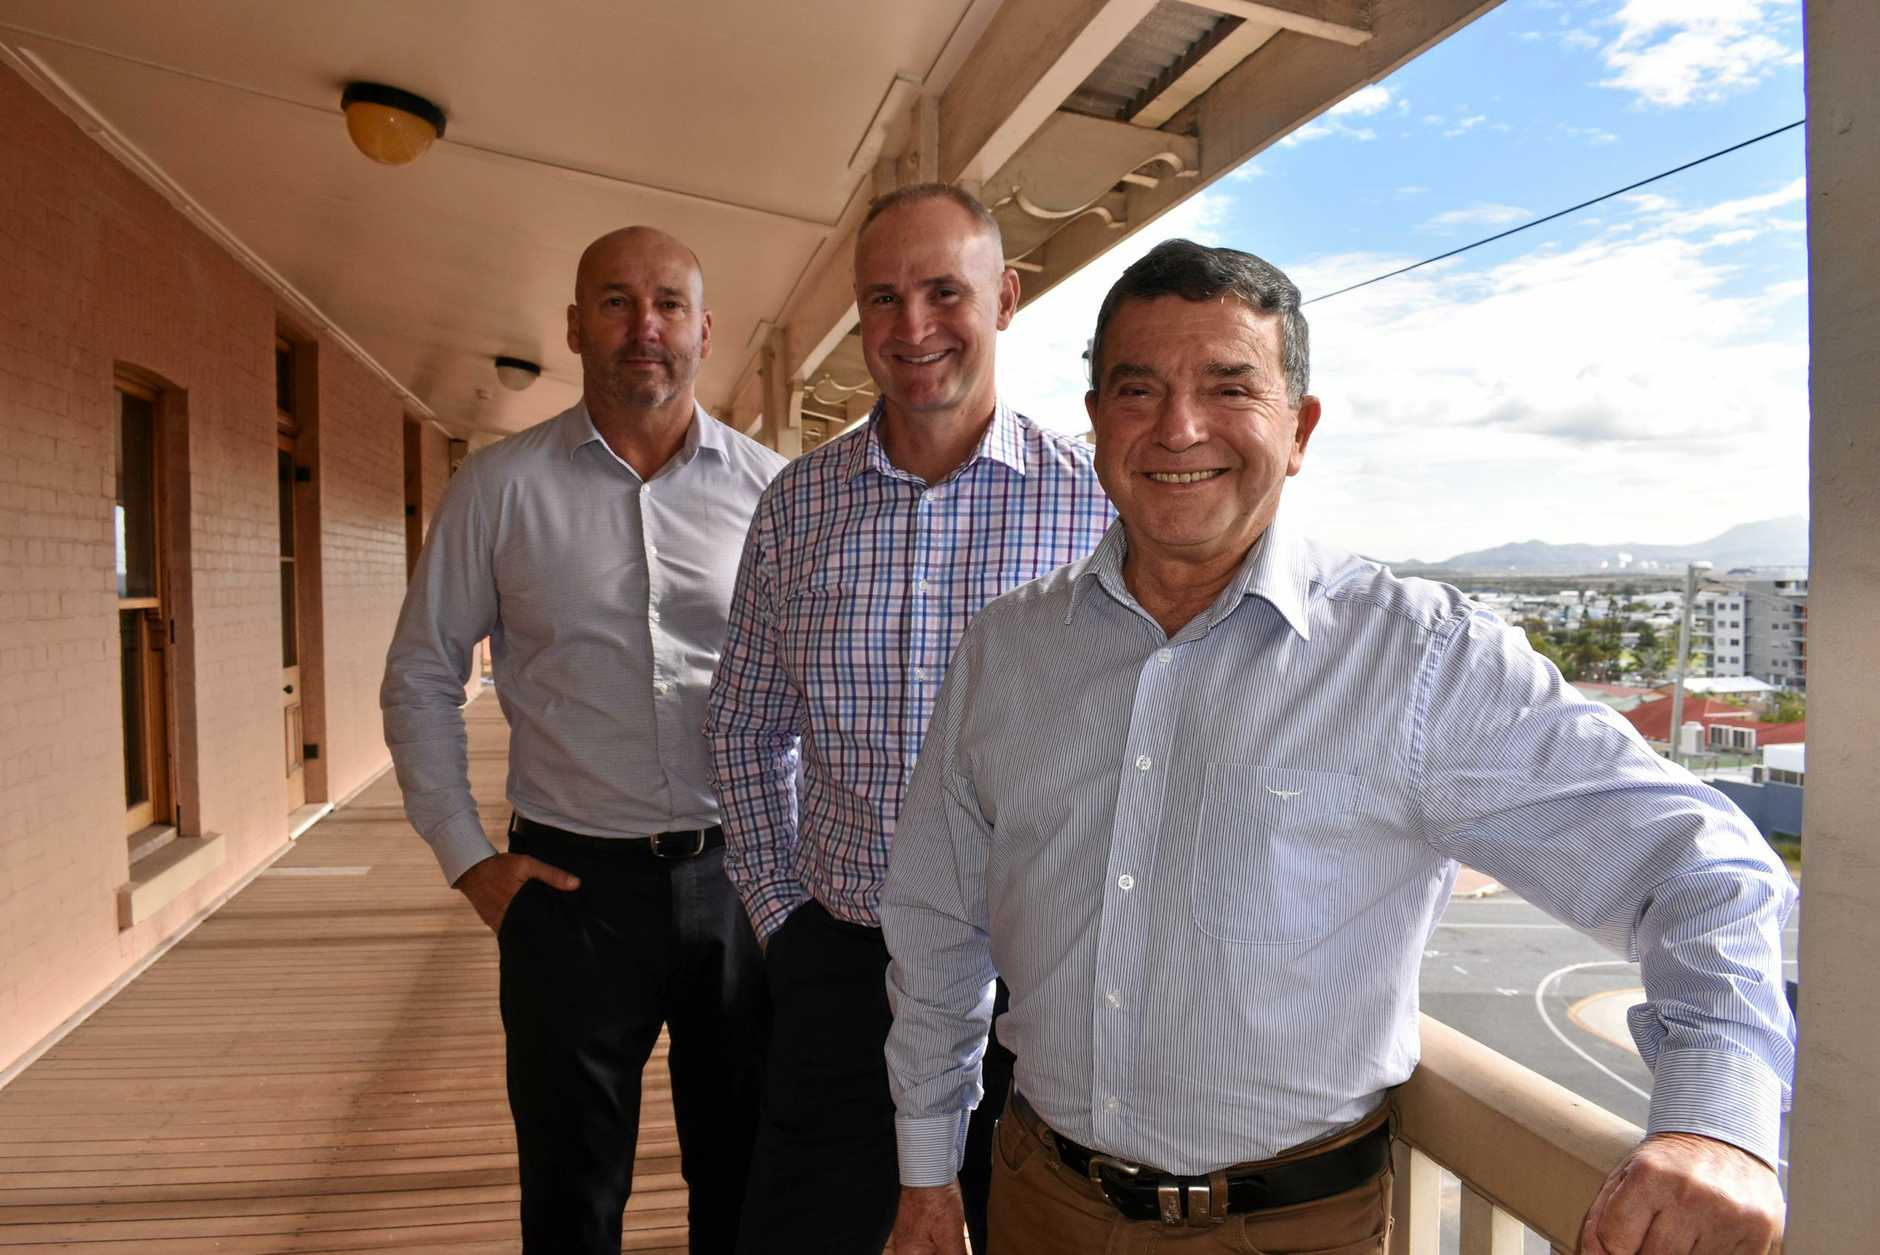 Gladstone Ports Corporation acting chief executive officer Craig Walker, Member for Gladstone Glenn Butcher and GPC chairman Peter Corones discuss GPC's 2018-19 financial year results.